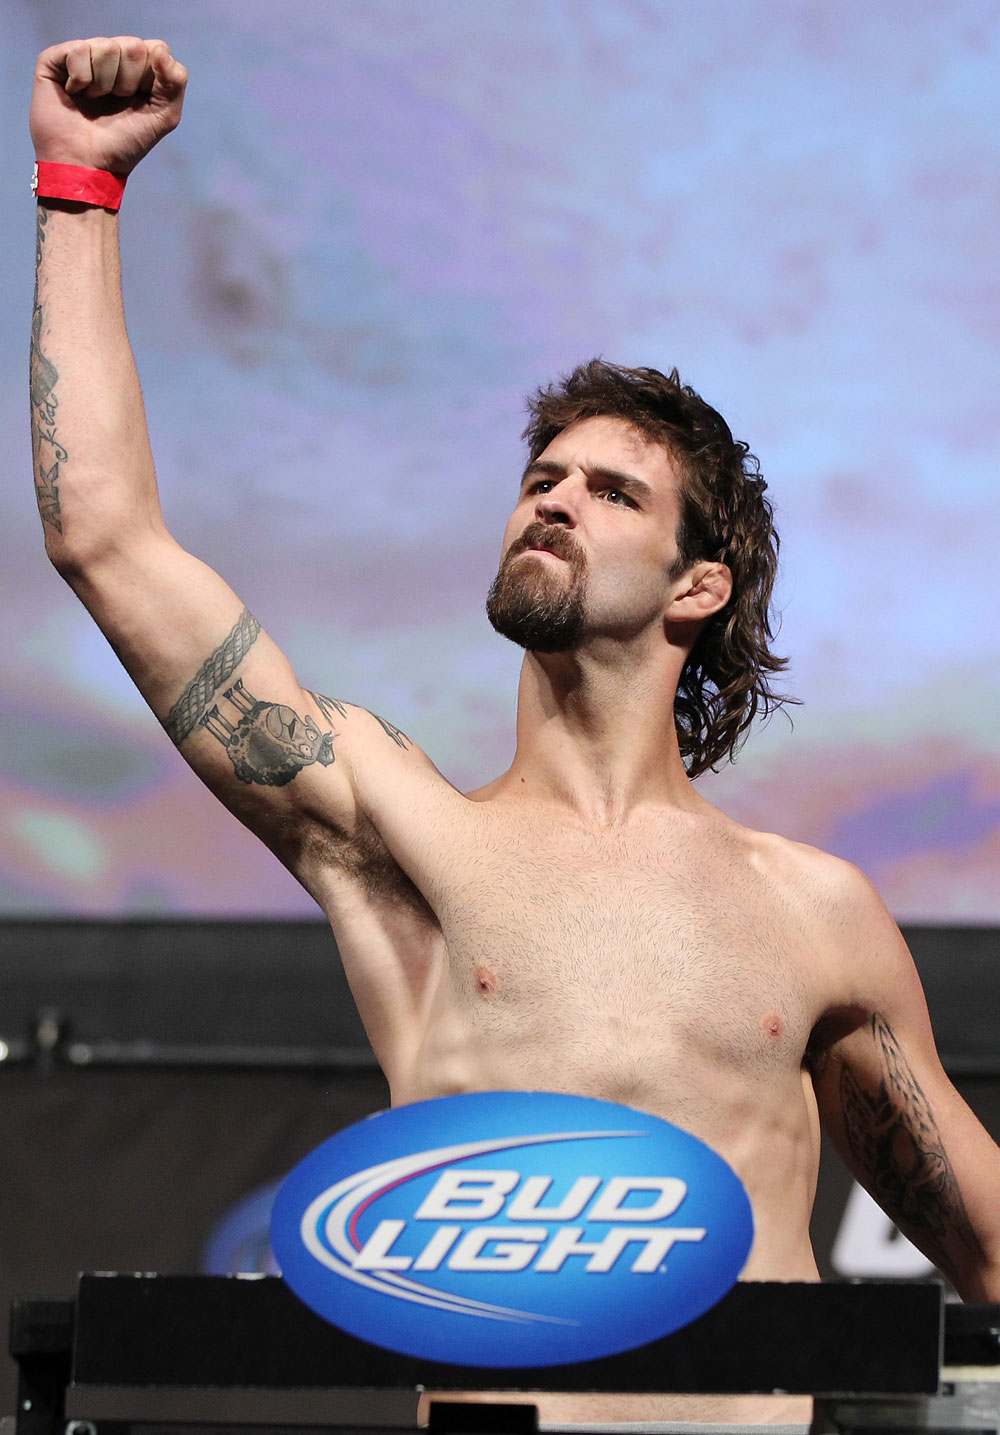 LAS VEGAS, NV - JULY 6:   Cody McKenzie makes weight during the UFC 148 Weigh In at the Mandalay Bay Events Center on July 6, 2012 in Las Vegas, Nevada.  (Photo by Josh Hedges/Zuffa LLC/Zuffa LLC via Getty Images)